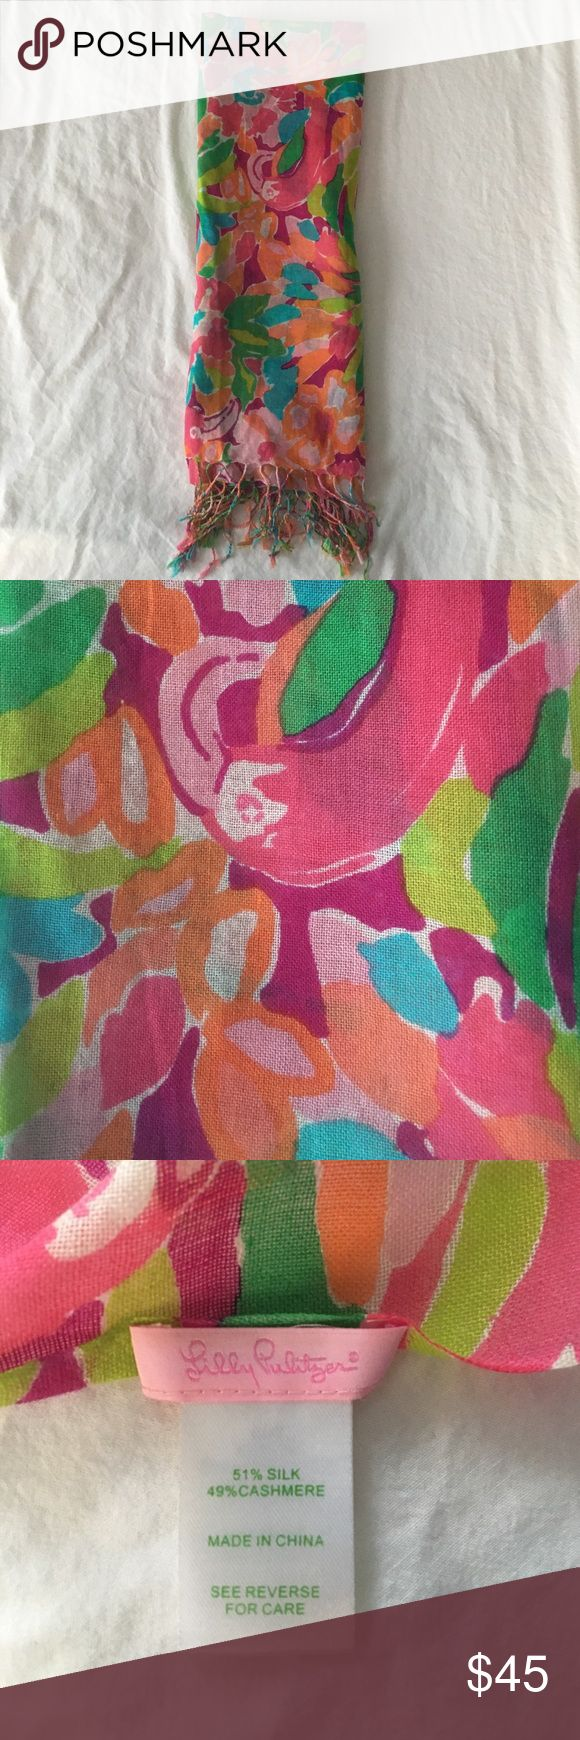 Lilly Pulitzer Murfee Scarf Super cute Lilly scarf in the pattern Lulu! EUC - only worn once. Includes Lilly Pulitzer box for storage. Perfect for spring! Lilly Pulitzer Accessories Scarves & Wraps